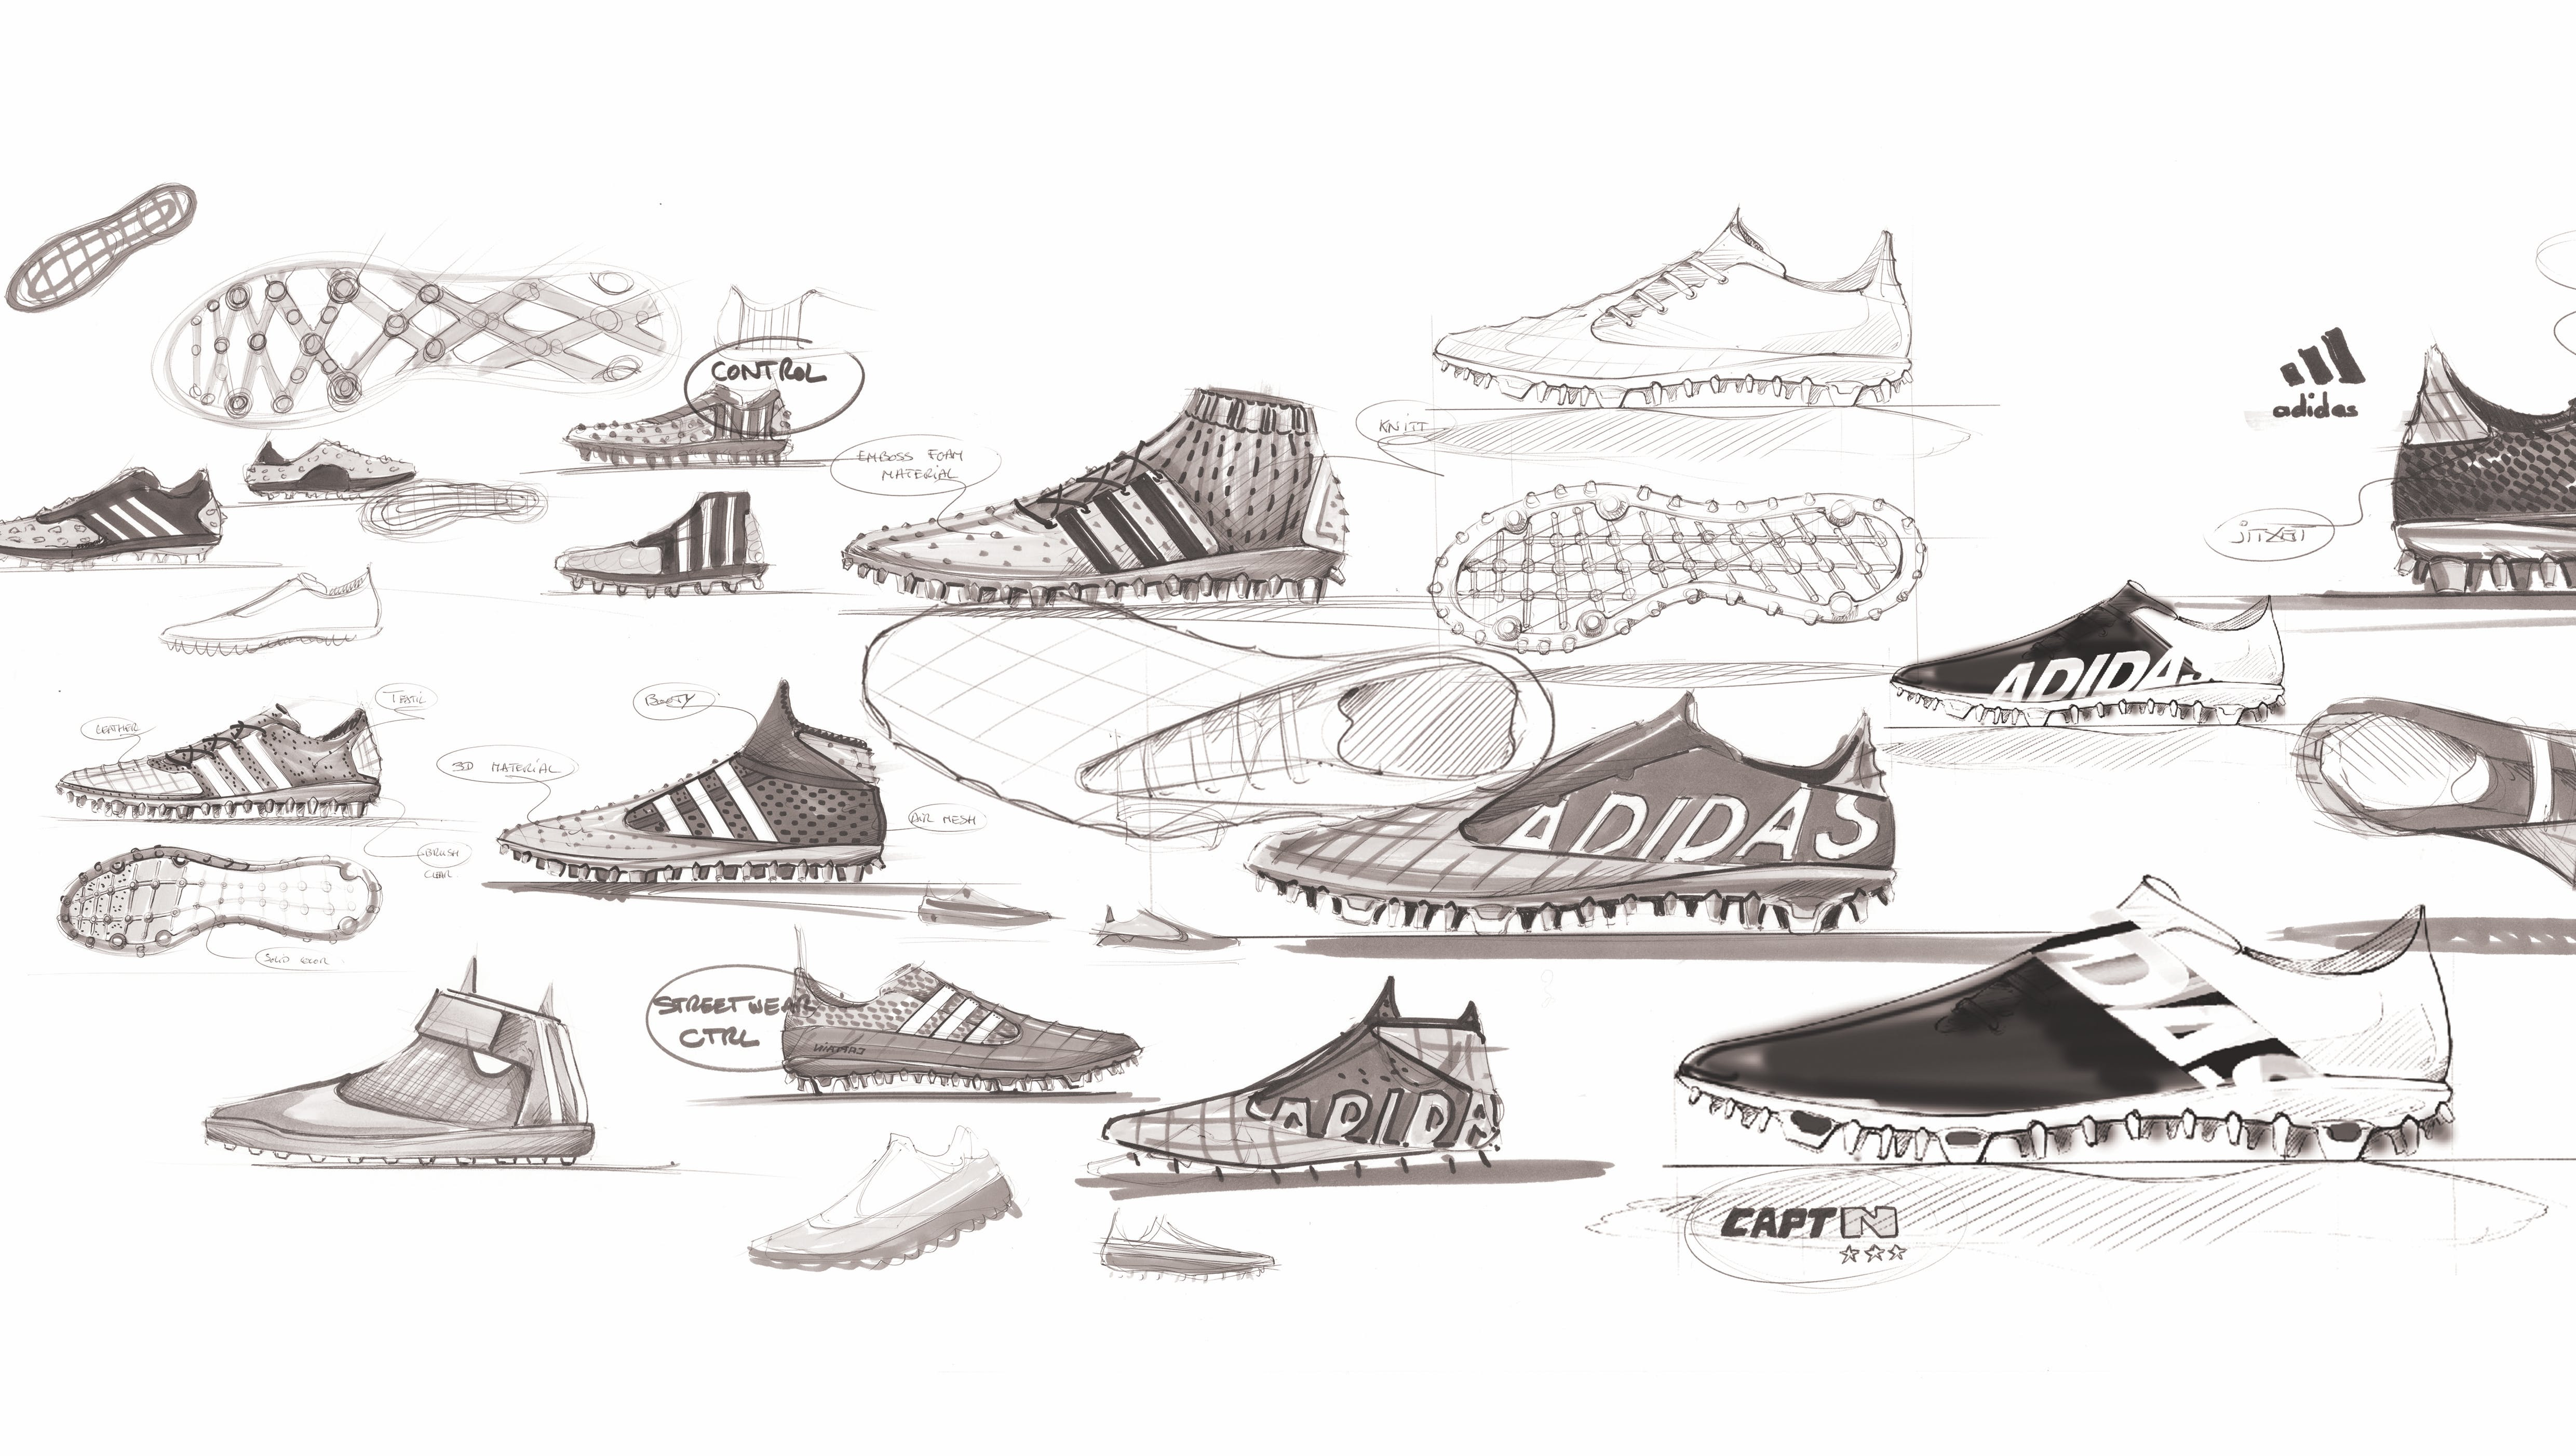 d0efeb2682685 Adidas to create  influencer network  as it aims to become top football  brand